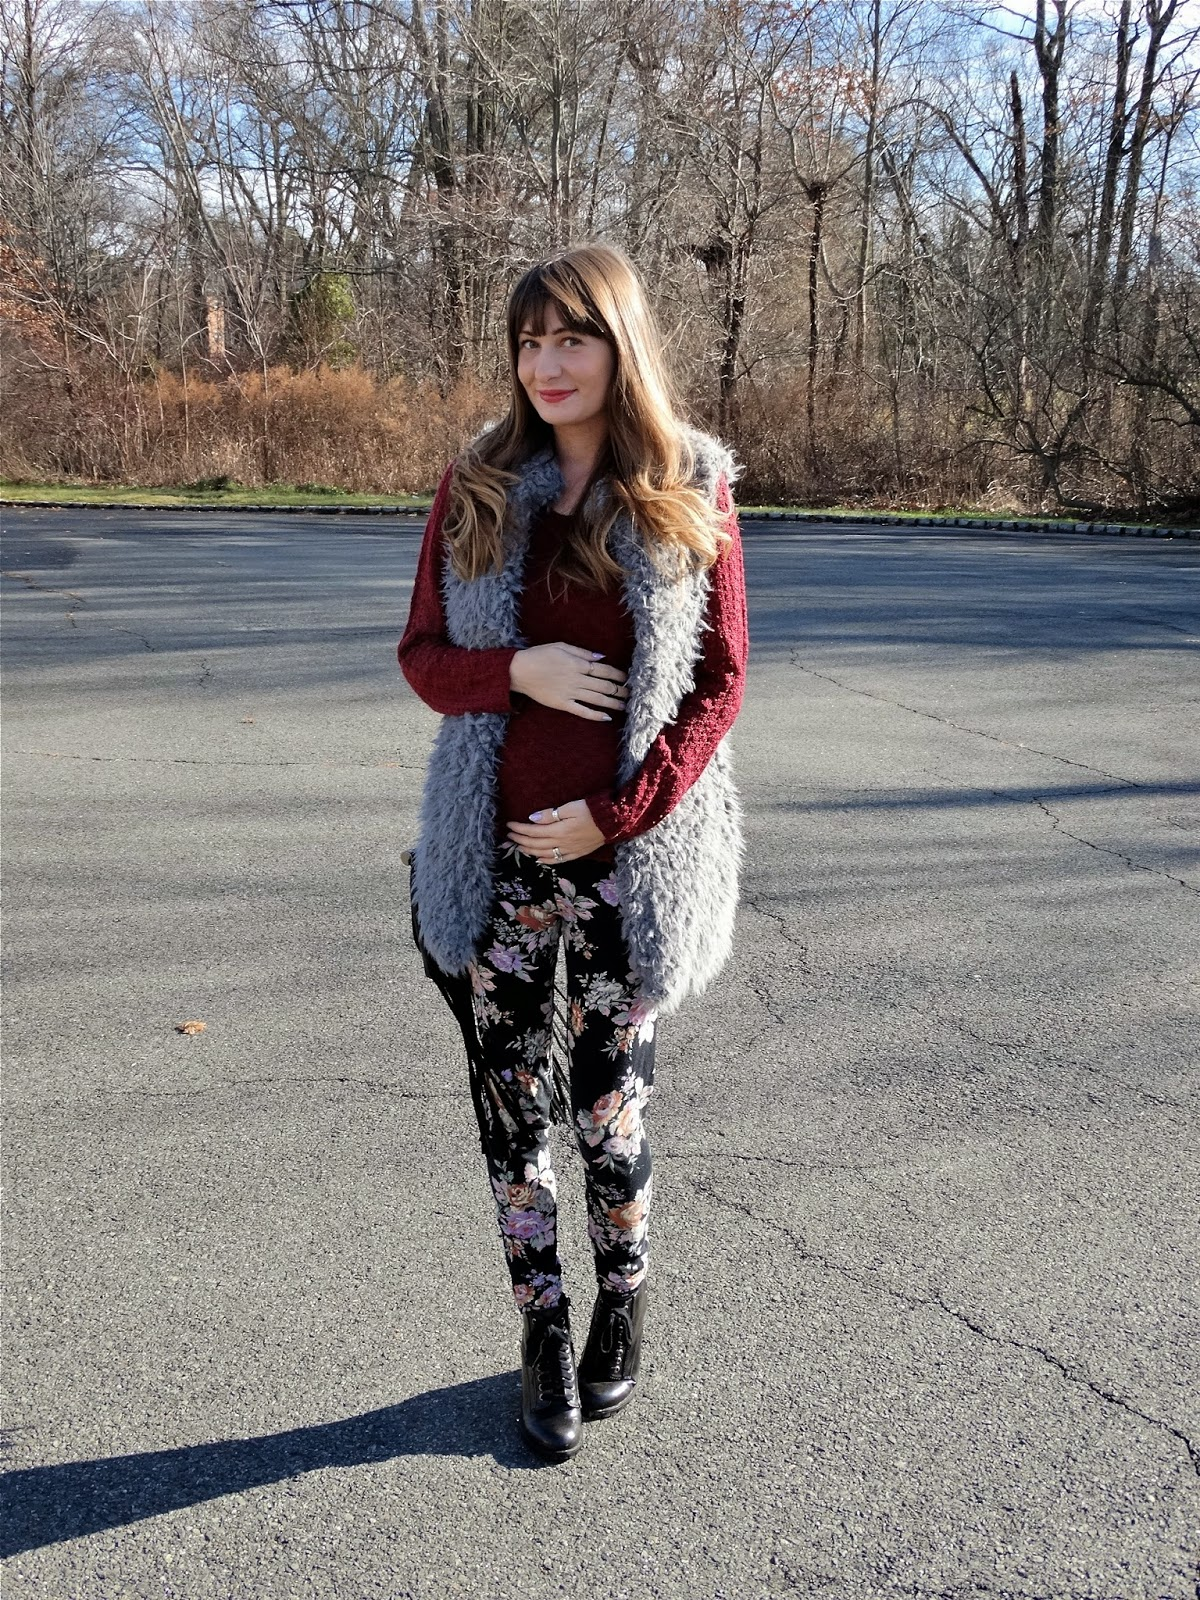 Maternity Style - Dressing your bump for winter months   House Of Jeffers   www.houseofjeffers.com